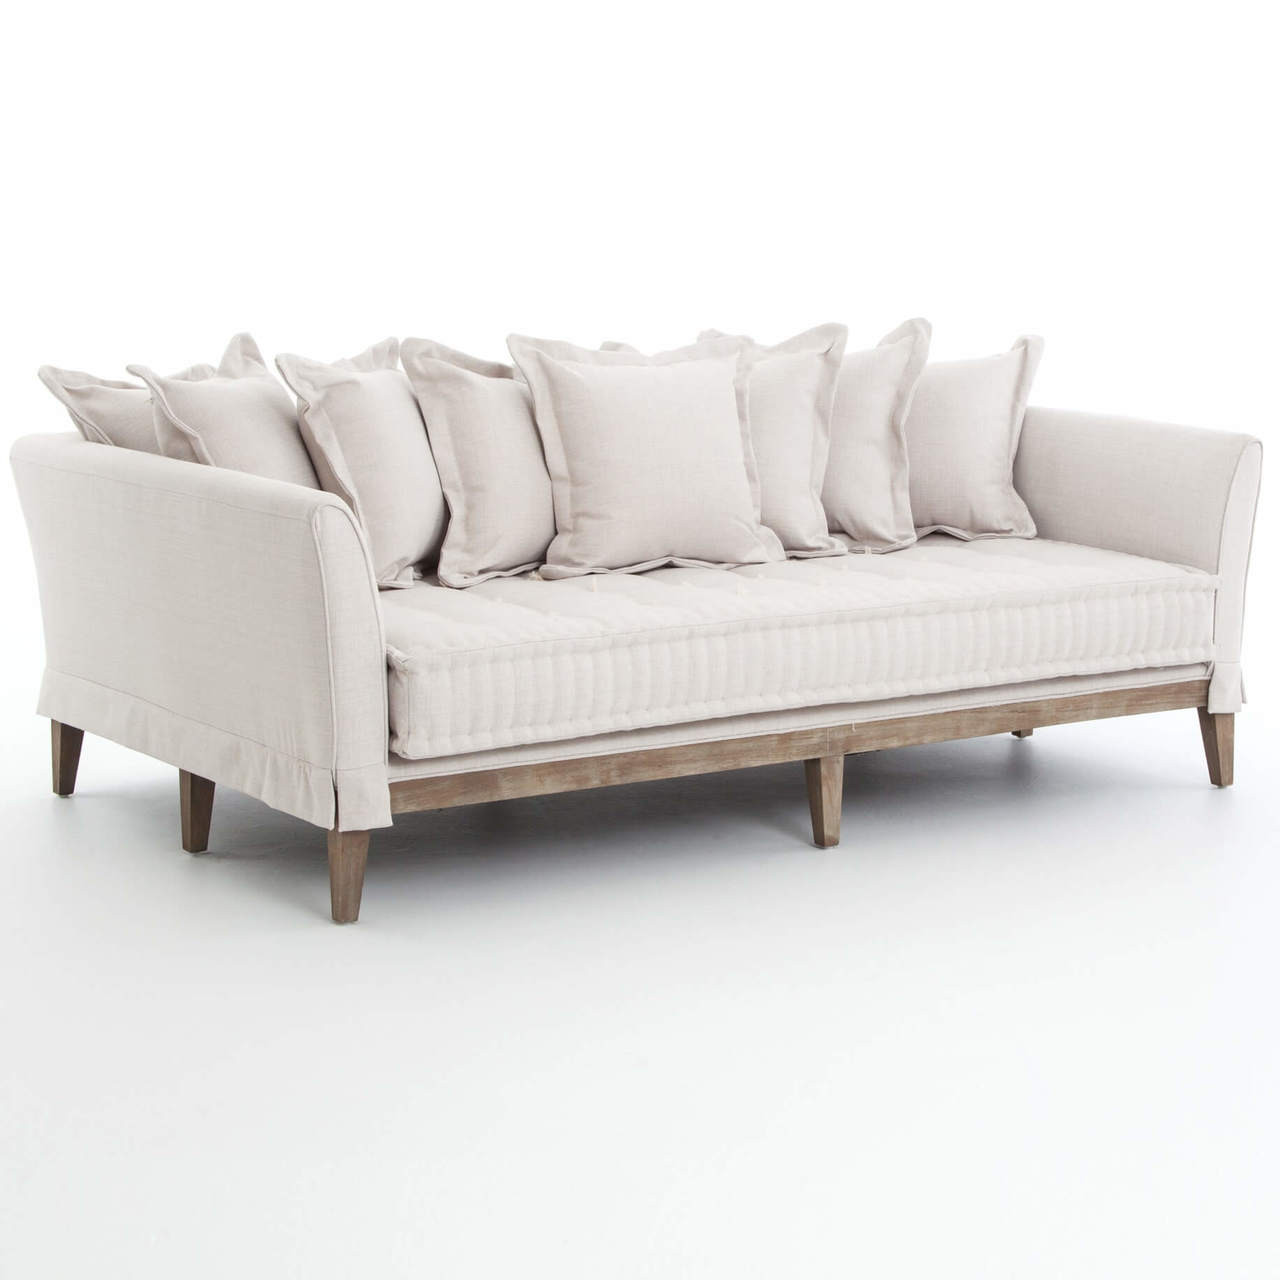 Theory Upholstered Daybed Couch-Sofa | Zin Home